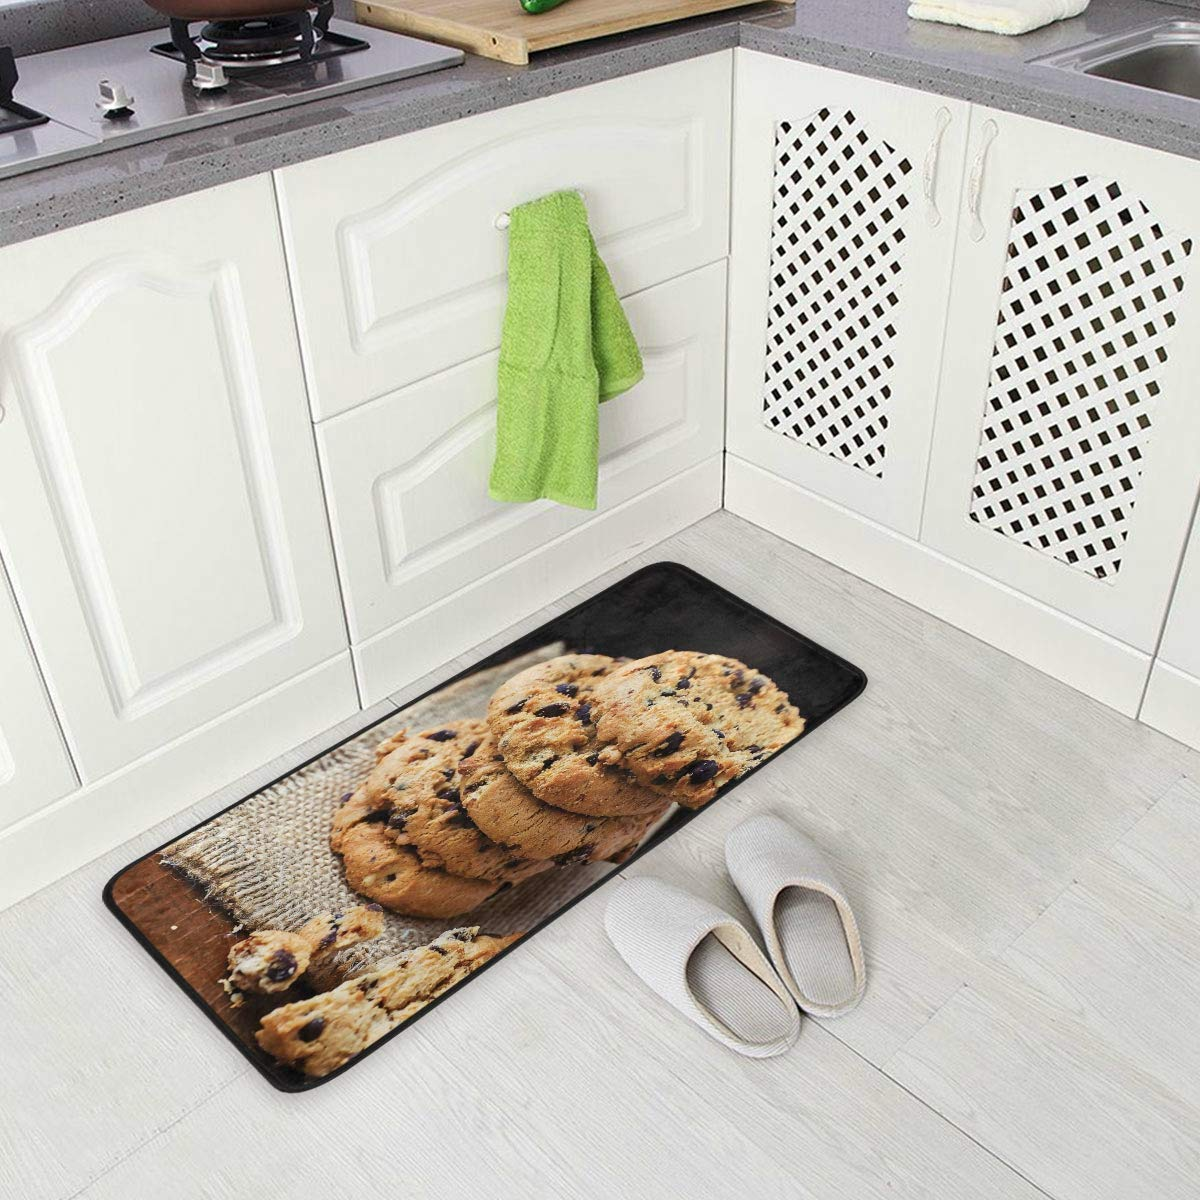 Jacksome Cookie Anti-Fatigue Memory Foam Kitchen Mats Bathroom Rugs Extra Soft Non-Slip Water Resistant Back Anti-Slip Runner Area Rug for Kitchen and Bathroom